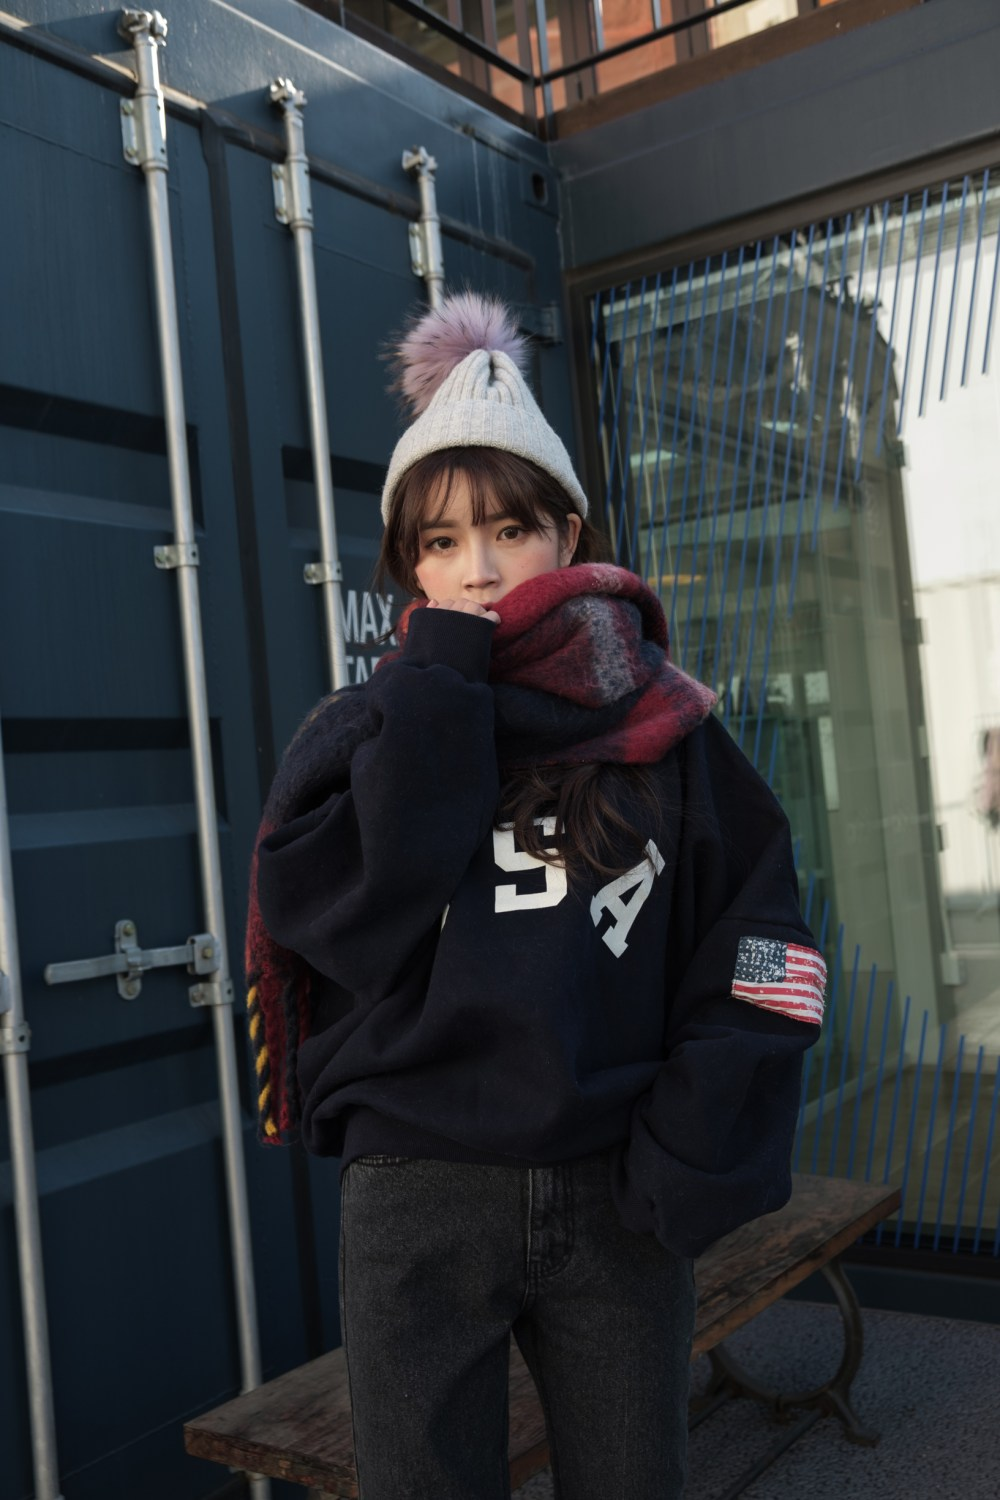 Street Fashion Photoshoot January Winter Lookbook in Seoul South Korea